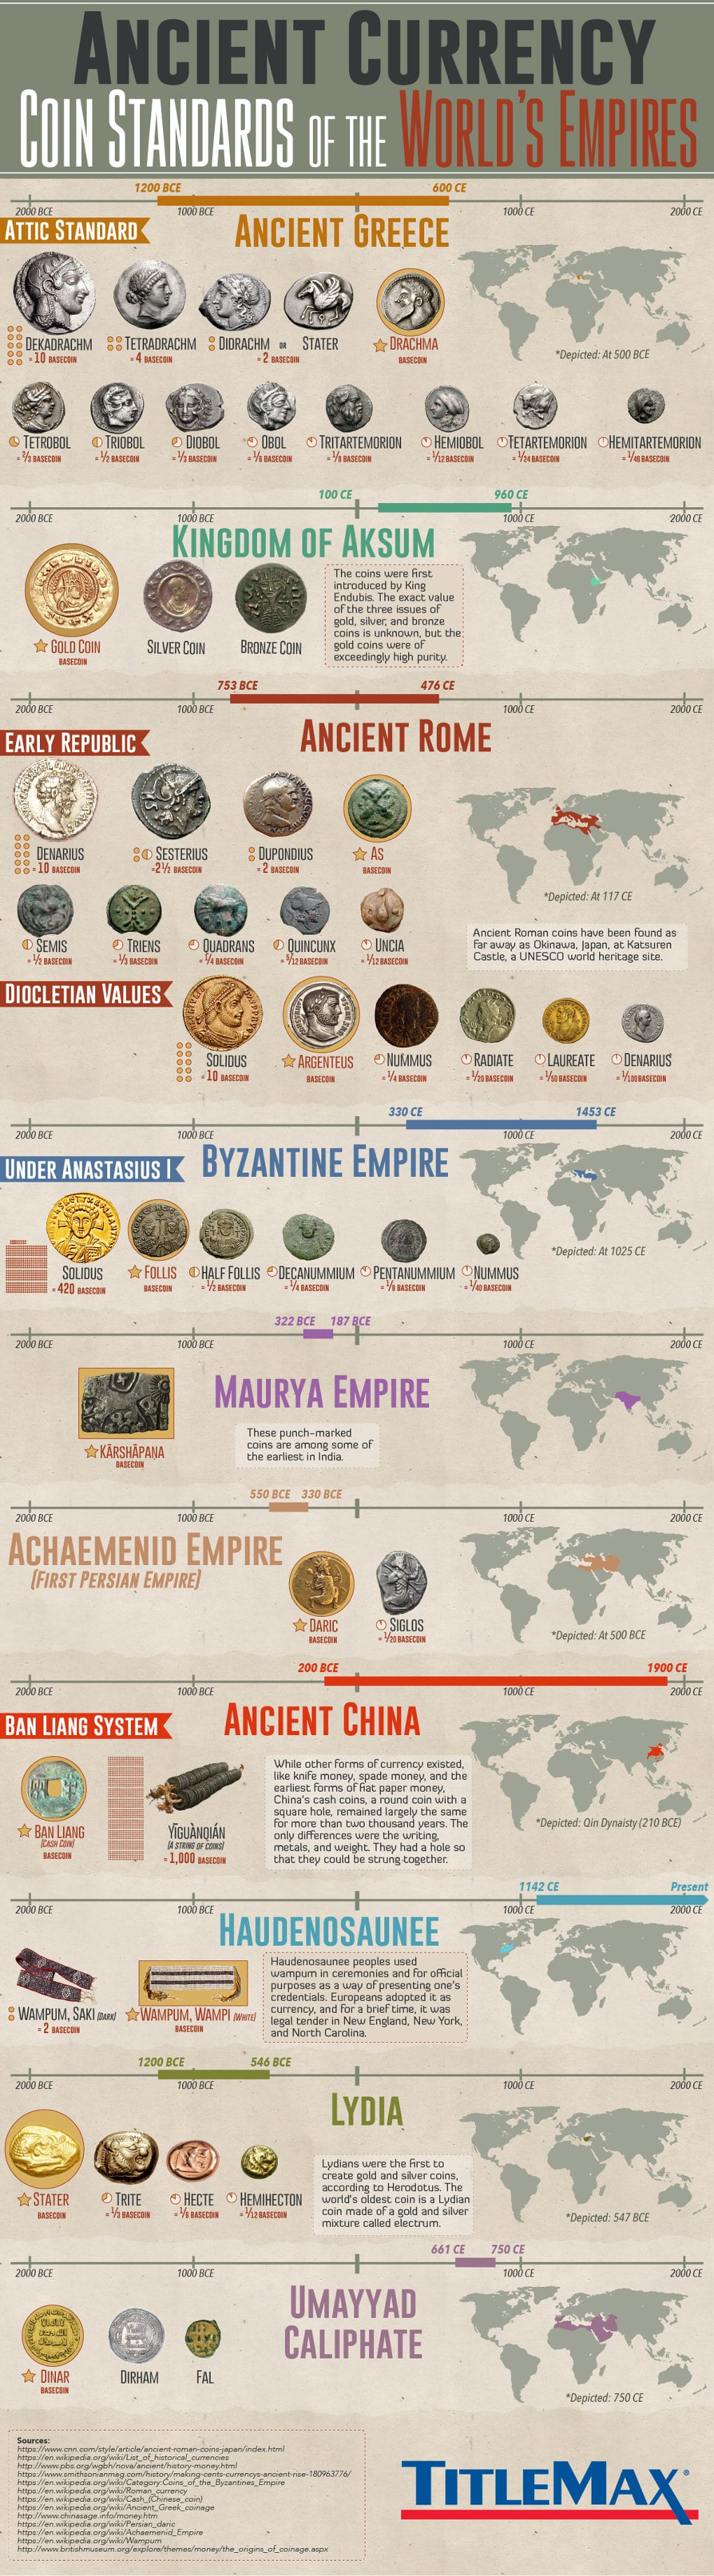 Ancient Currency: Coin Standards of the World's Empires